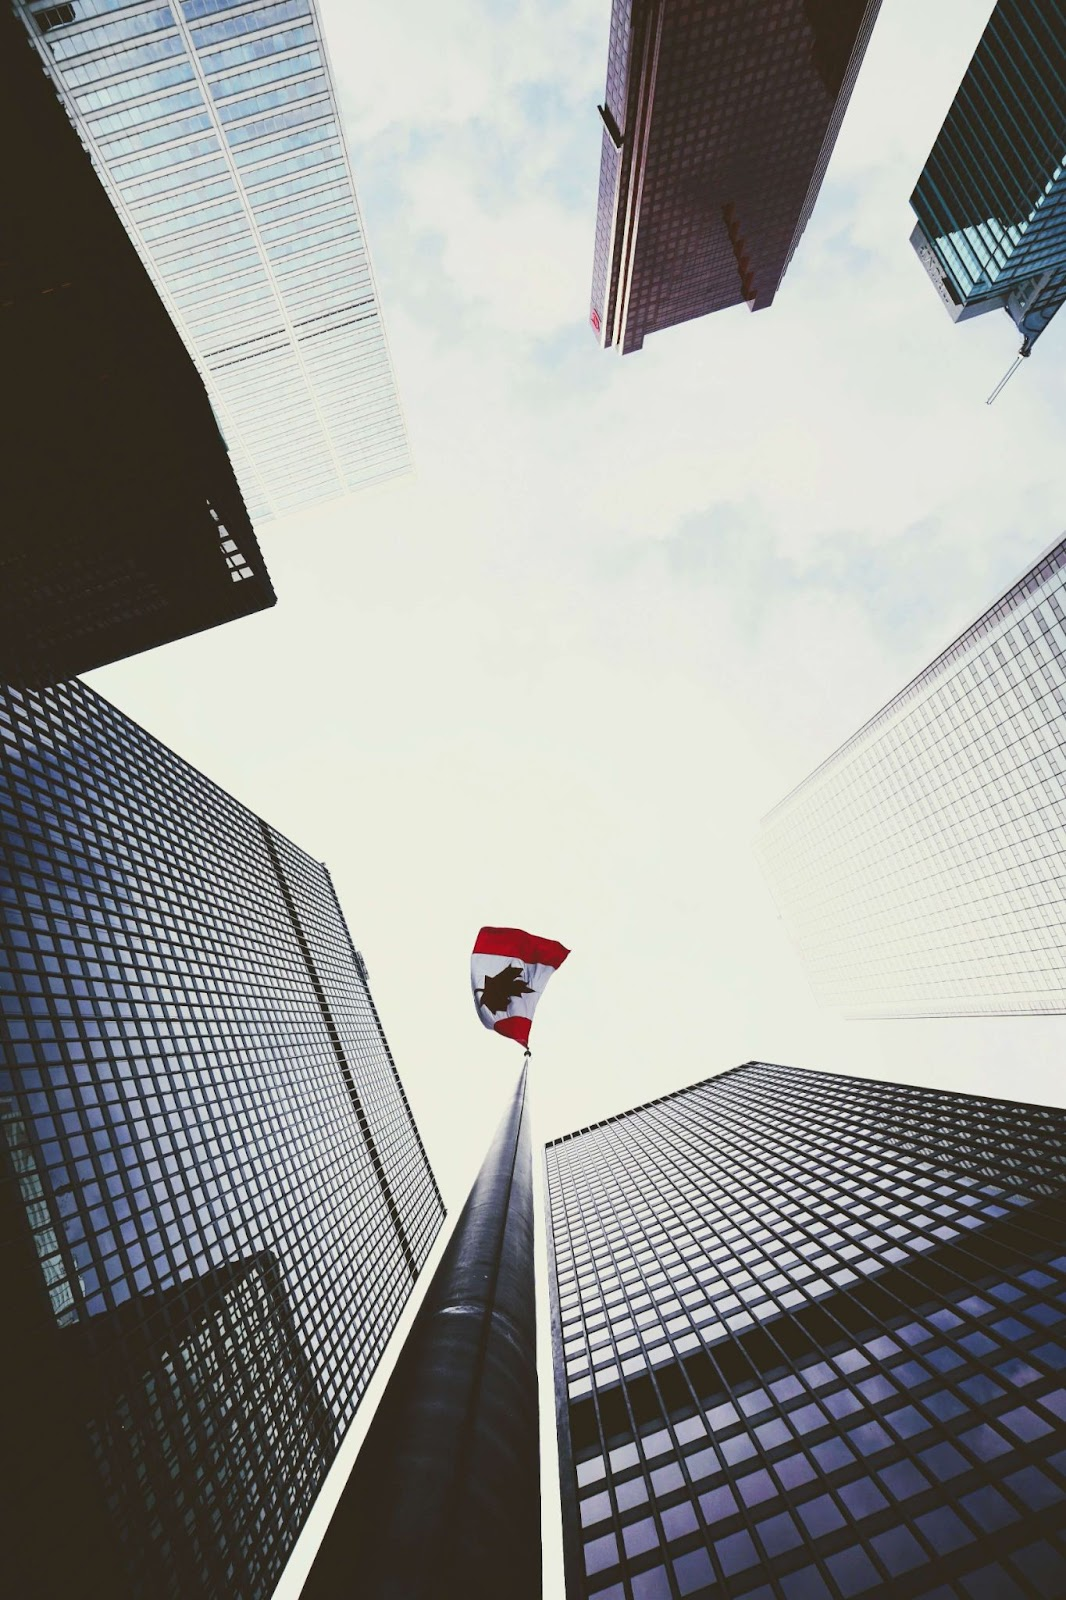 How to start a startup in Canada